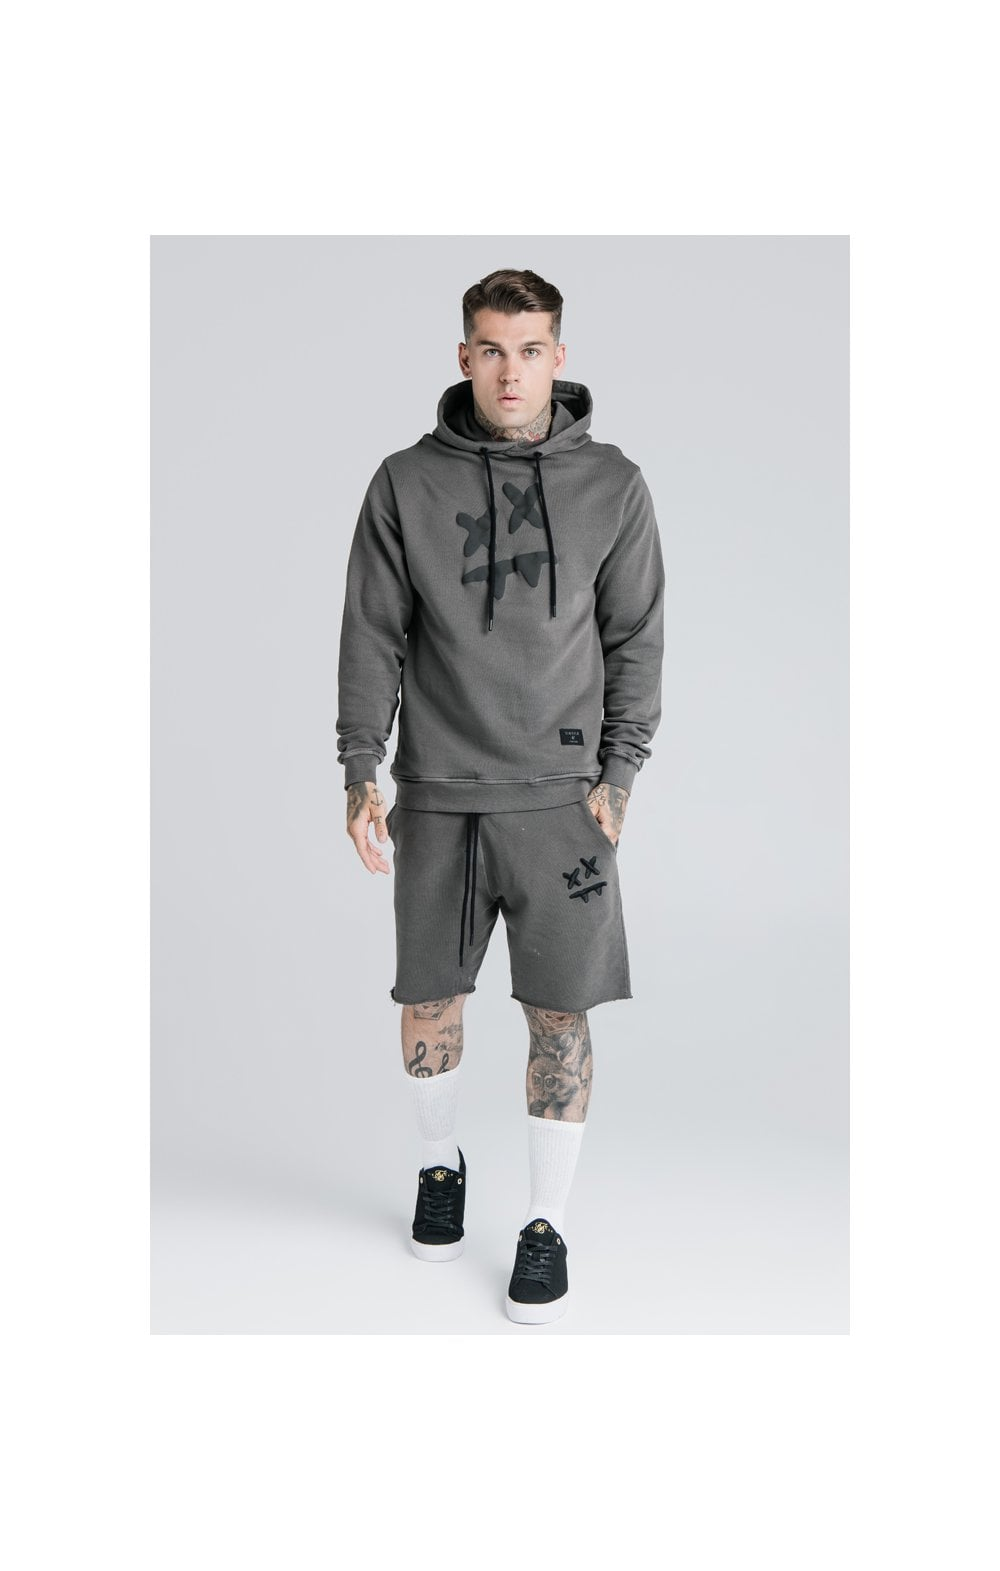 Load image into Gallery viewer, SikSilk X Steve Aoki Relaxed Shorts - Washed Grey (4)